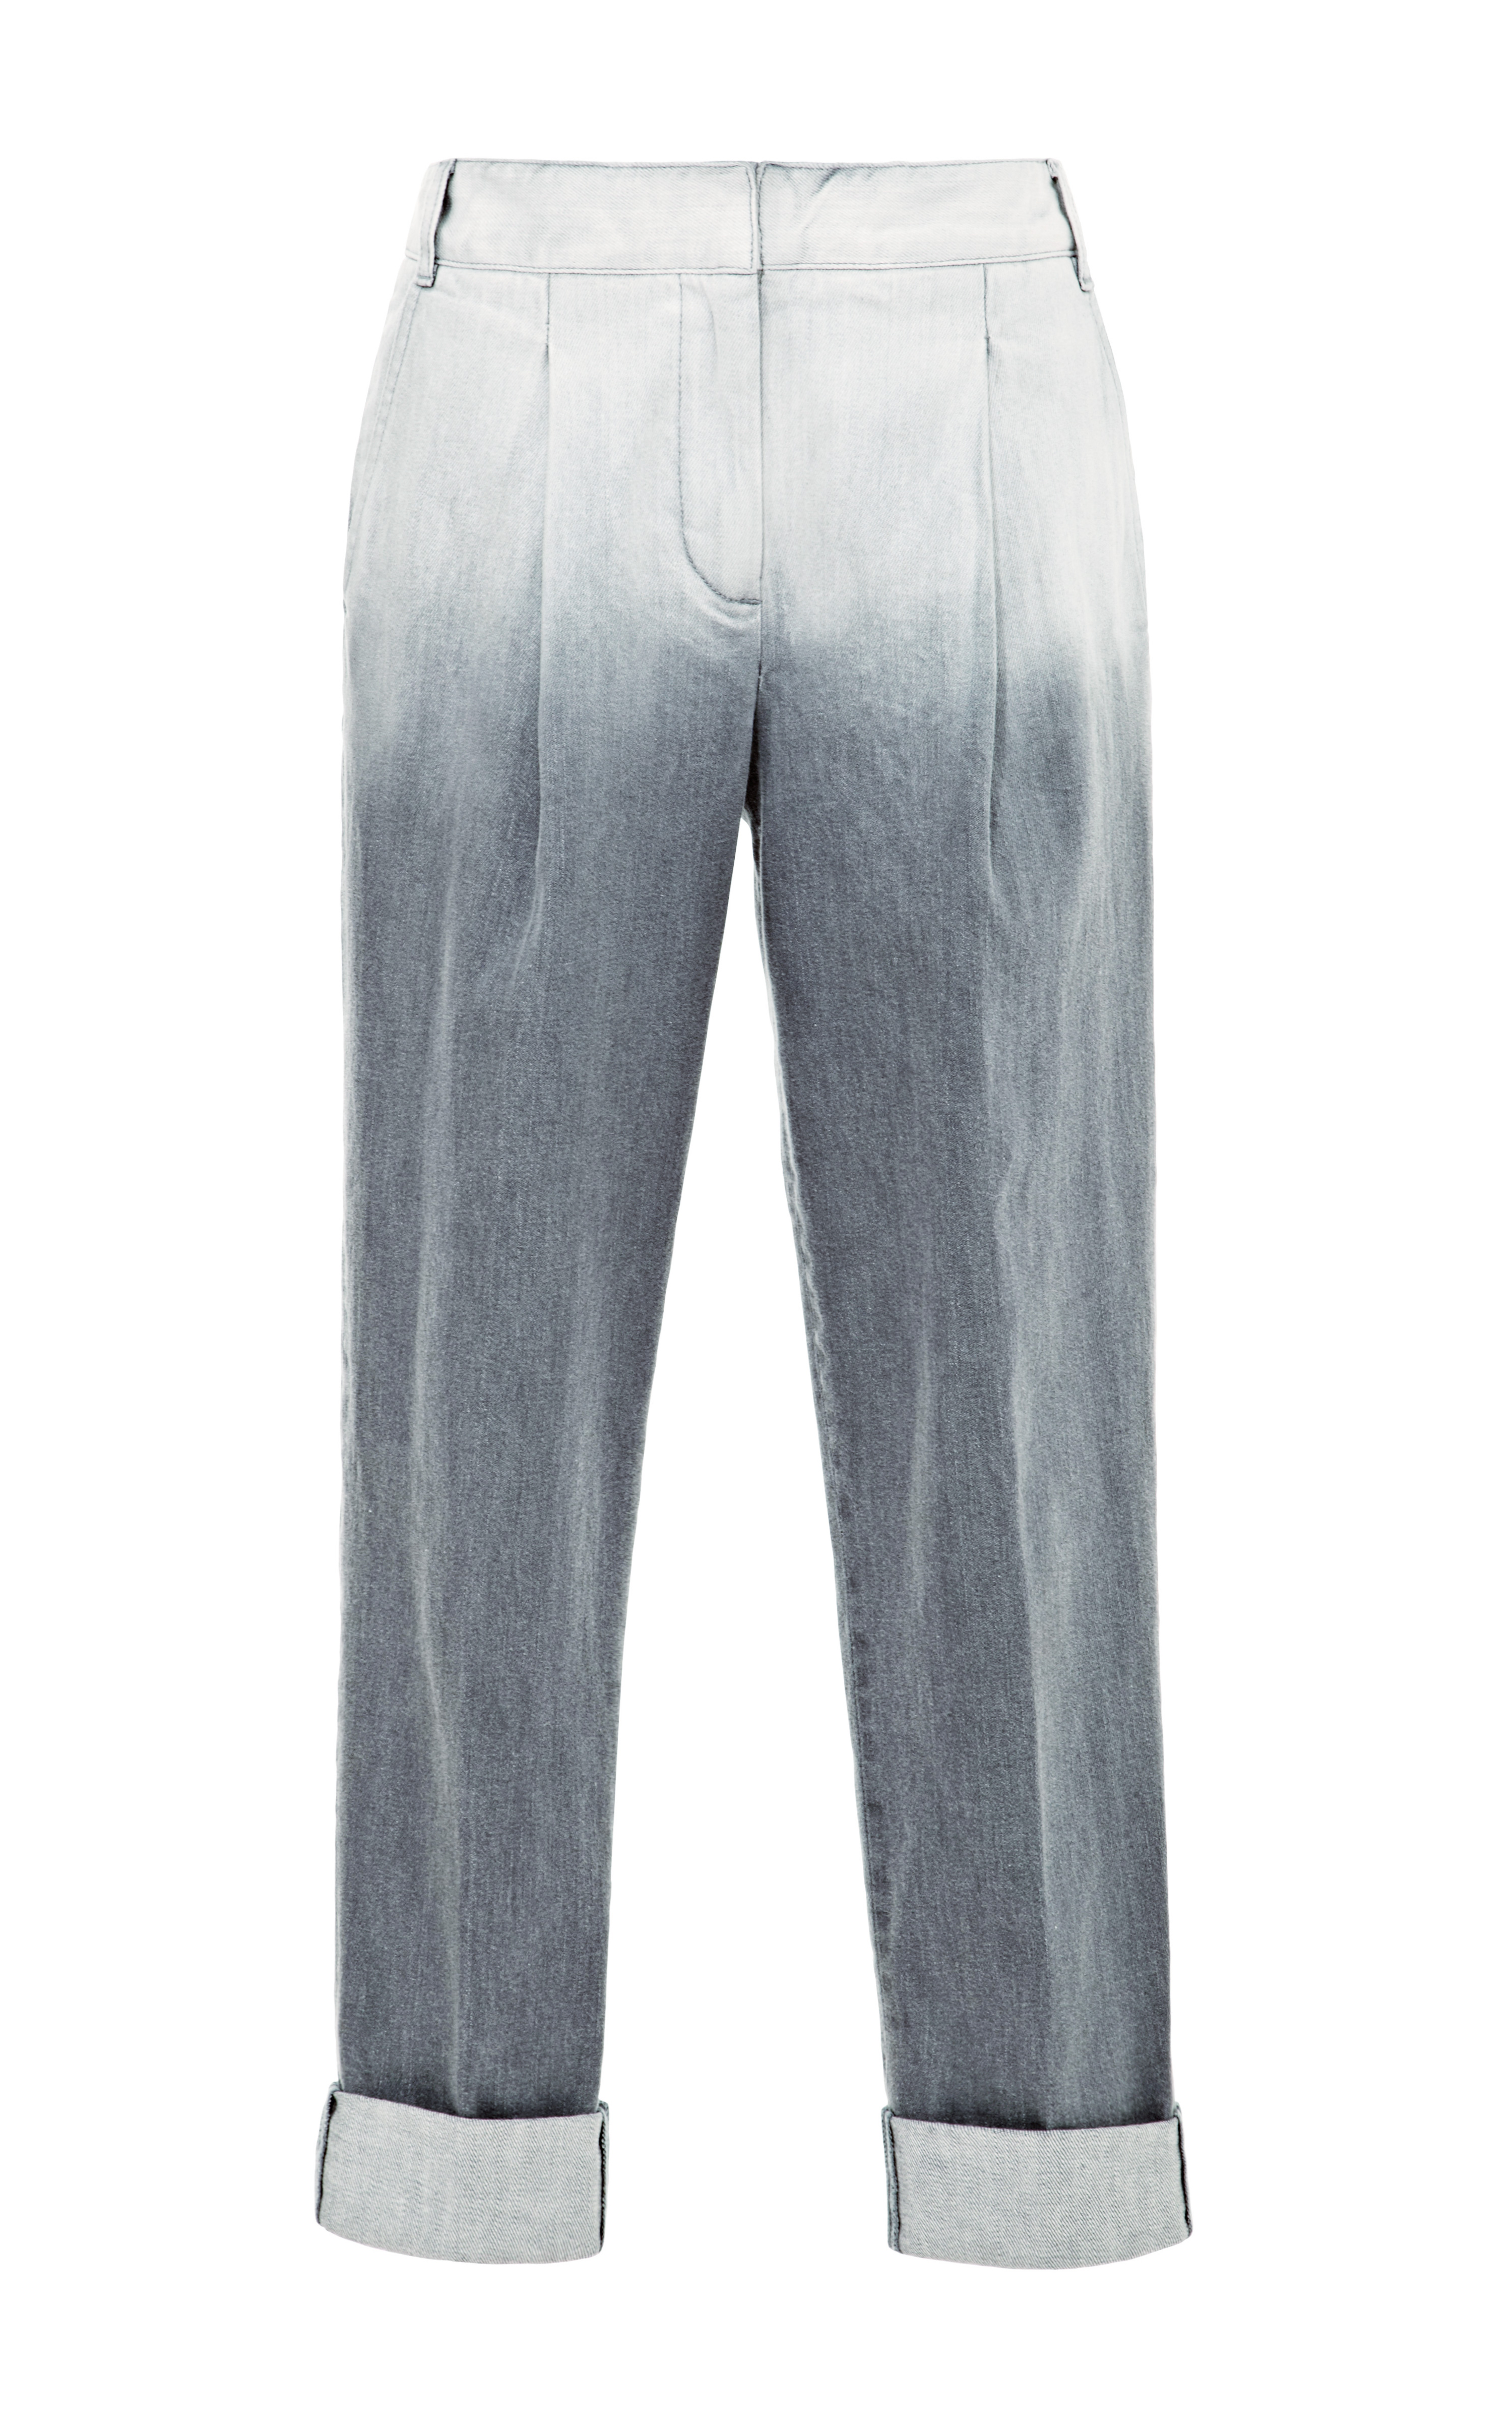 Tibi Dip Dyed Denim Pleated Pants in Gray | Lyst